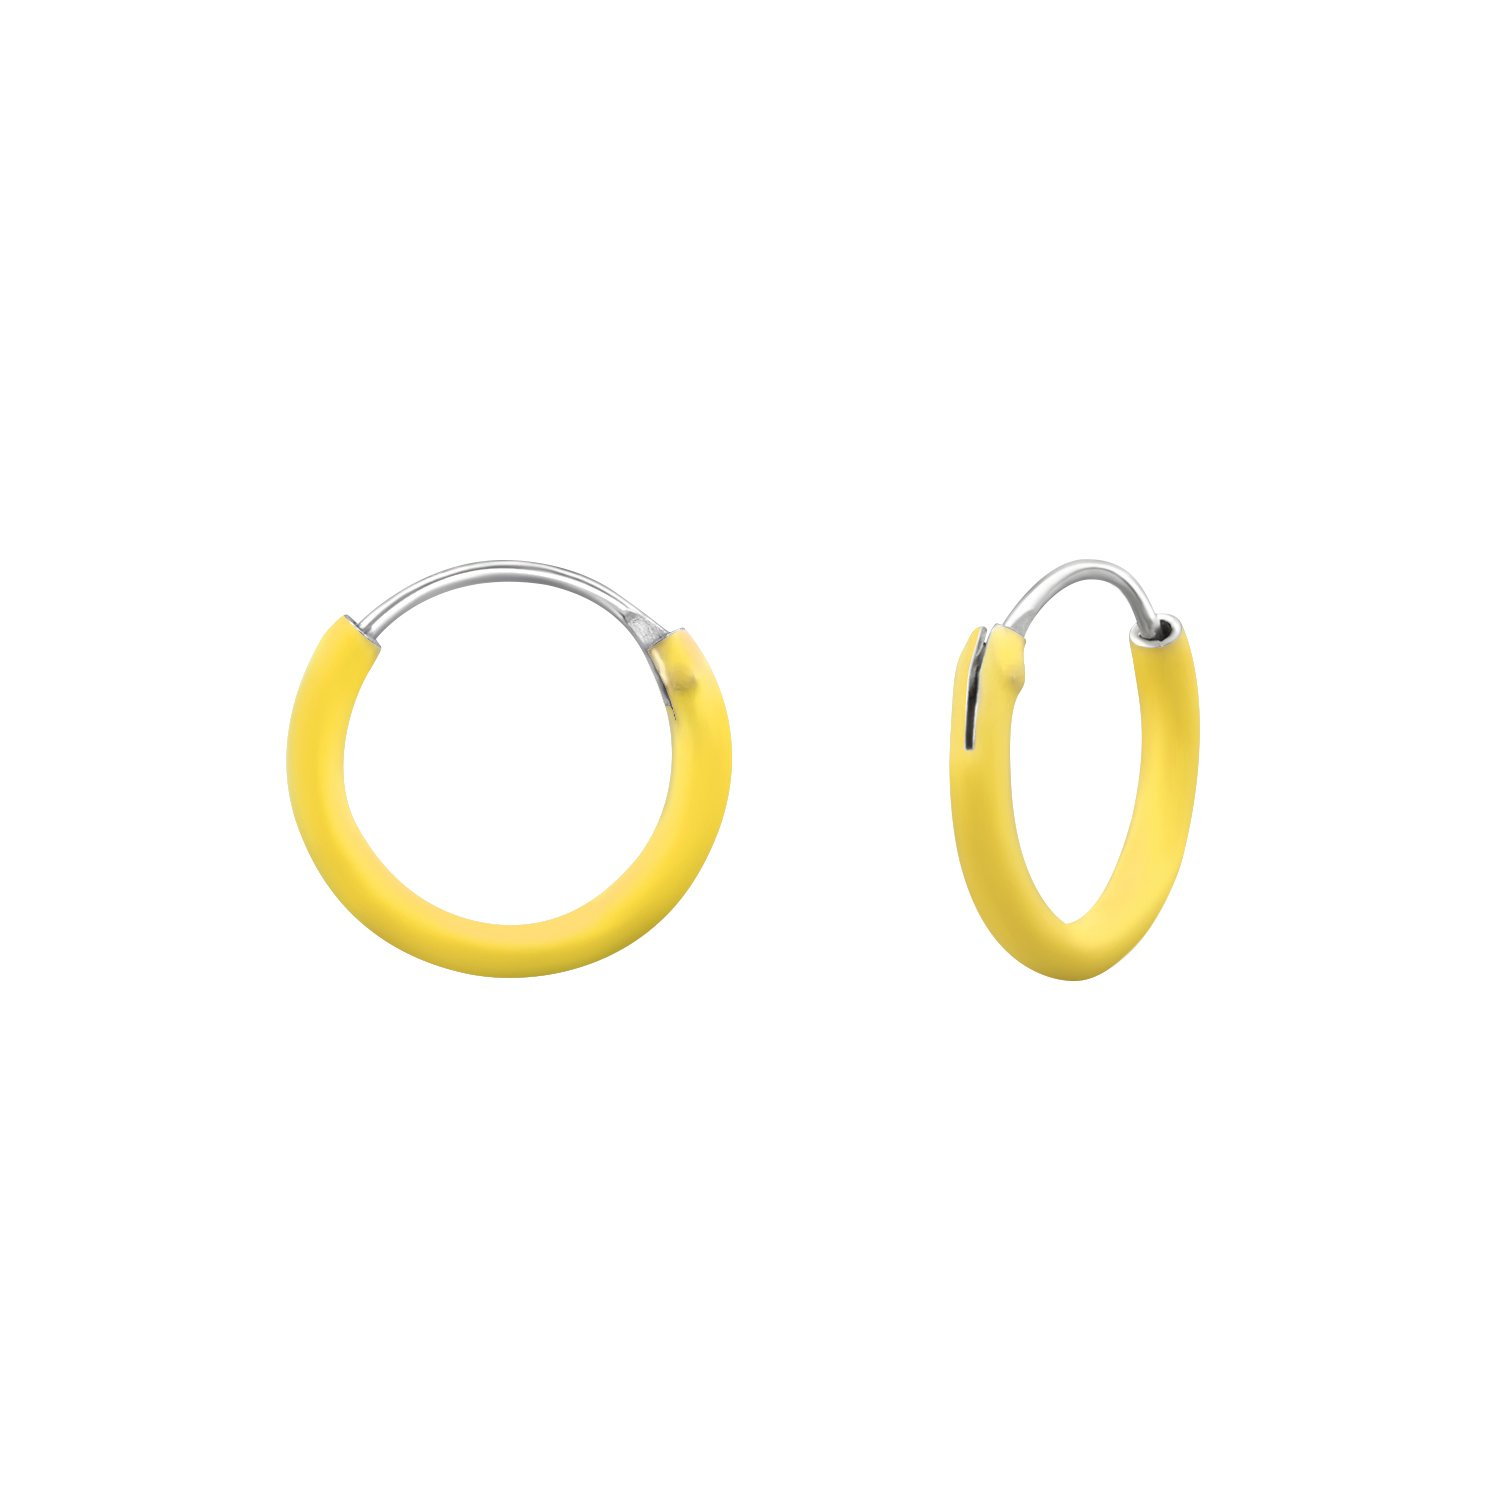 Hypoallergenic Silver Classic Earrings for Girls Yellow Nickel Free and Safe for Sensitive Ears